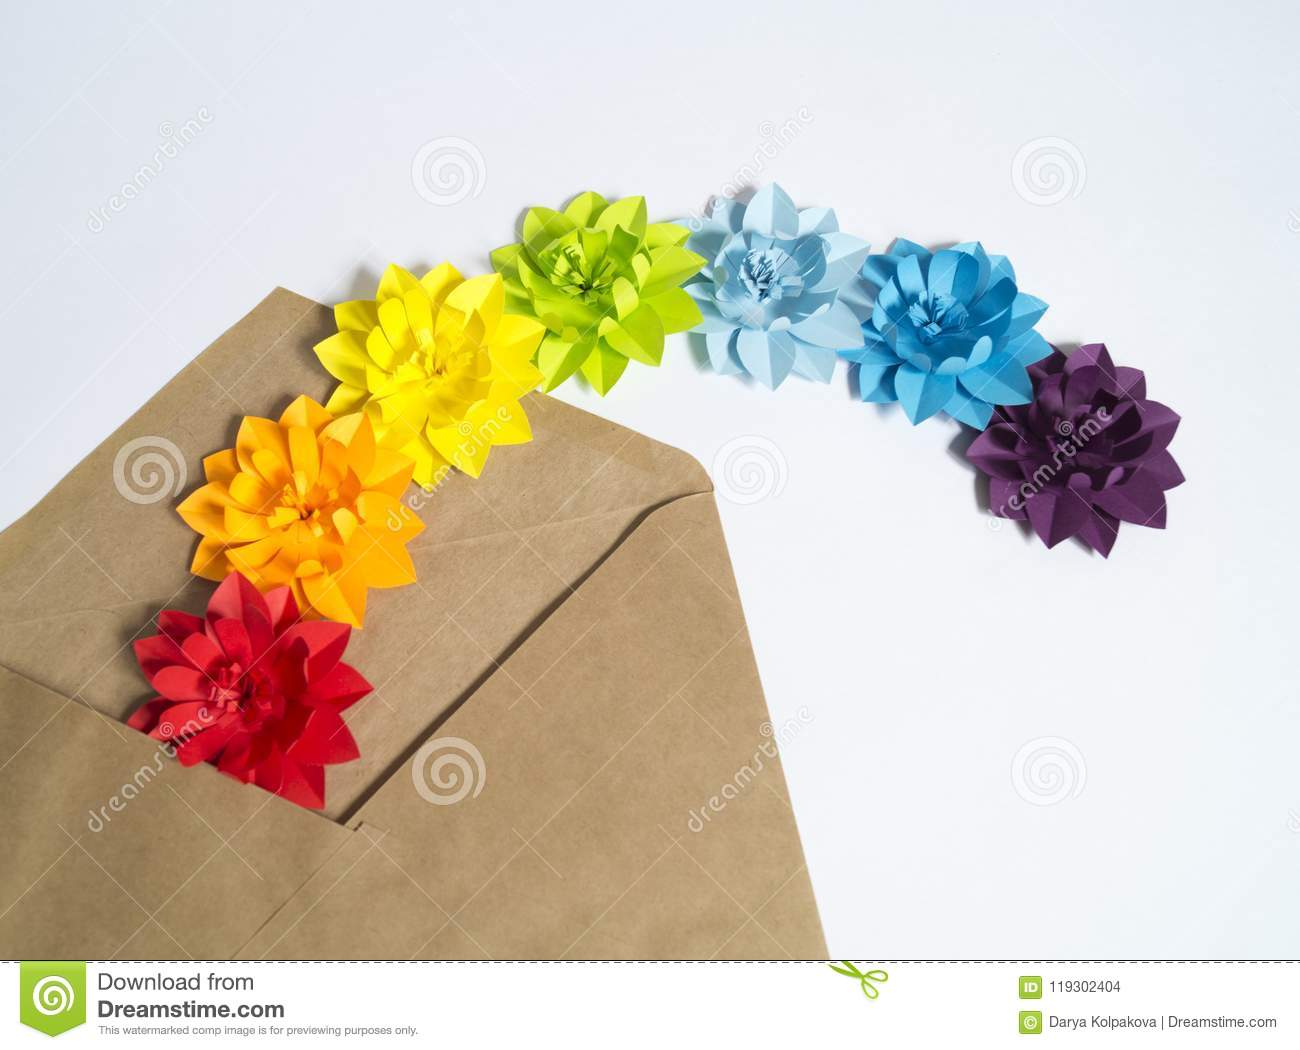 Paper Craft Flower Rainbow Decoration Concept Flat Lay Stock Photo